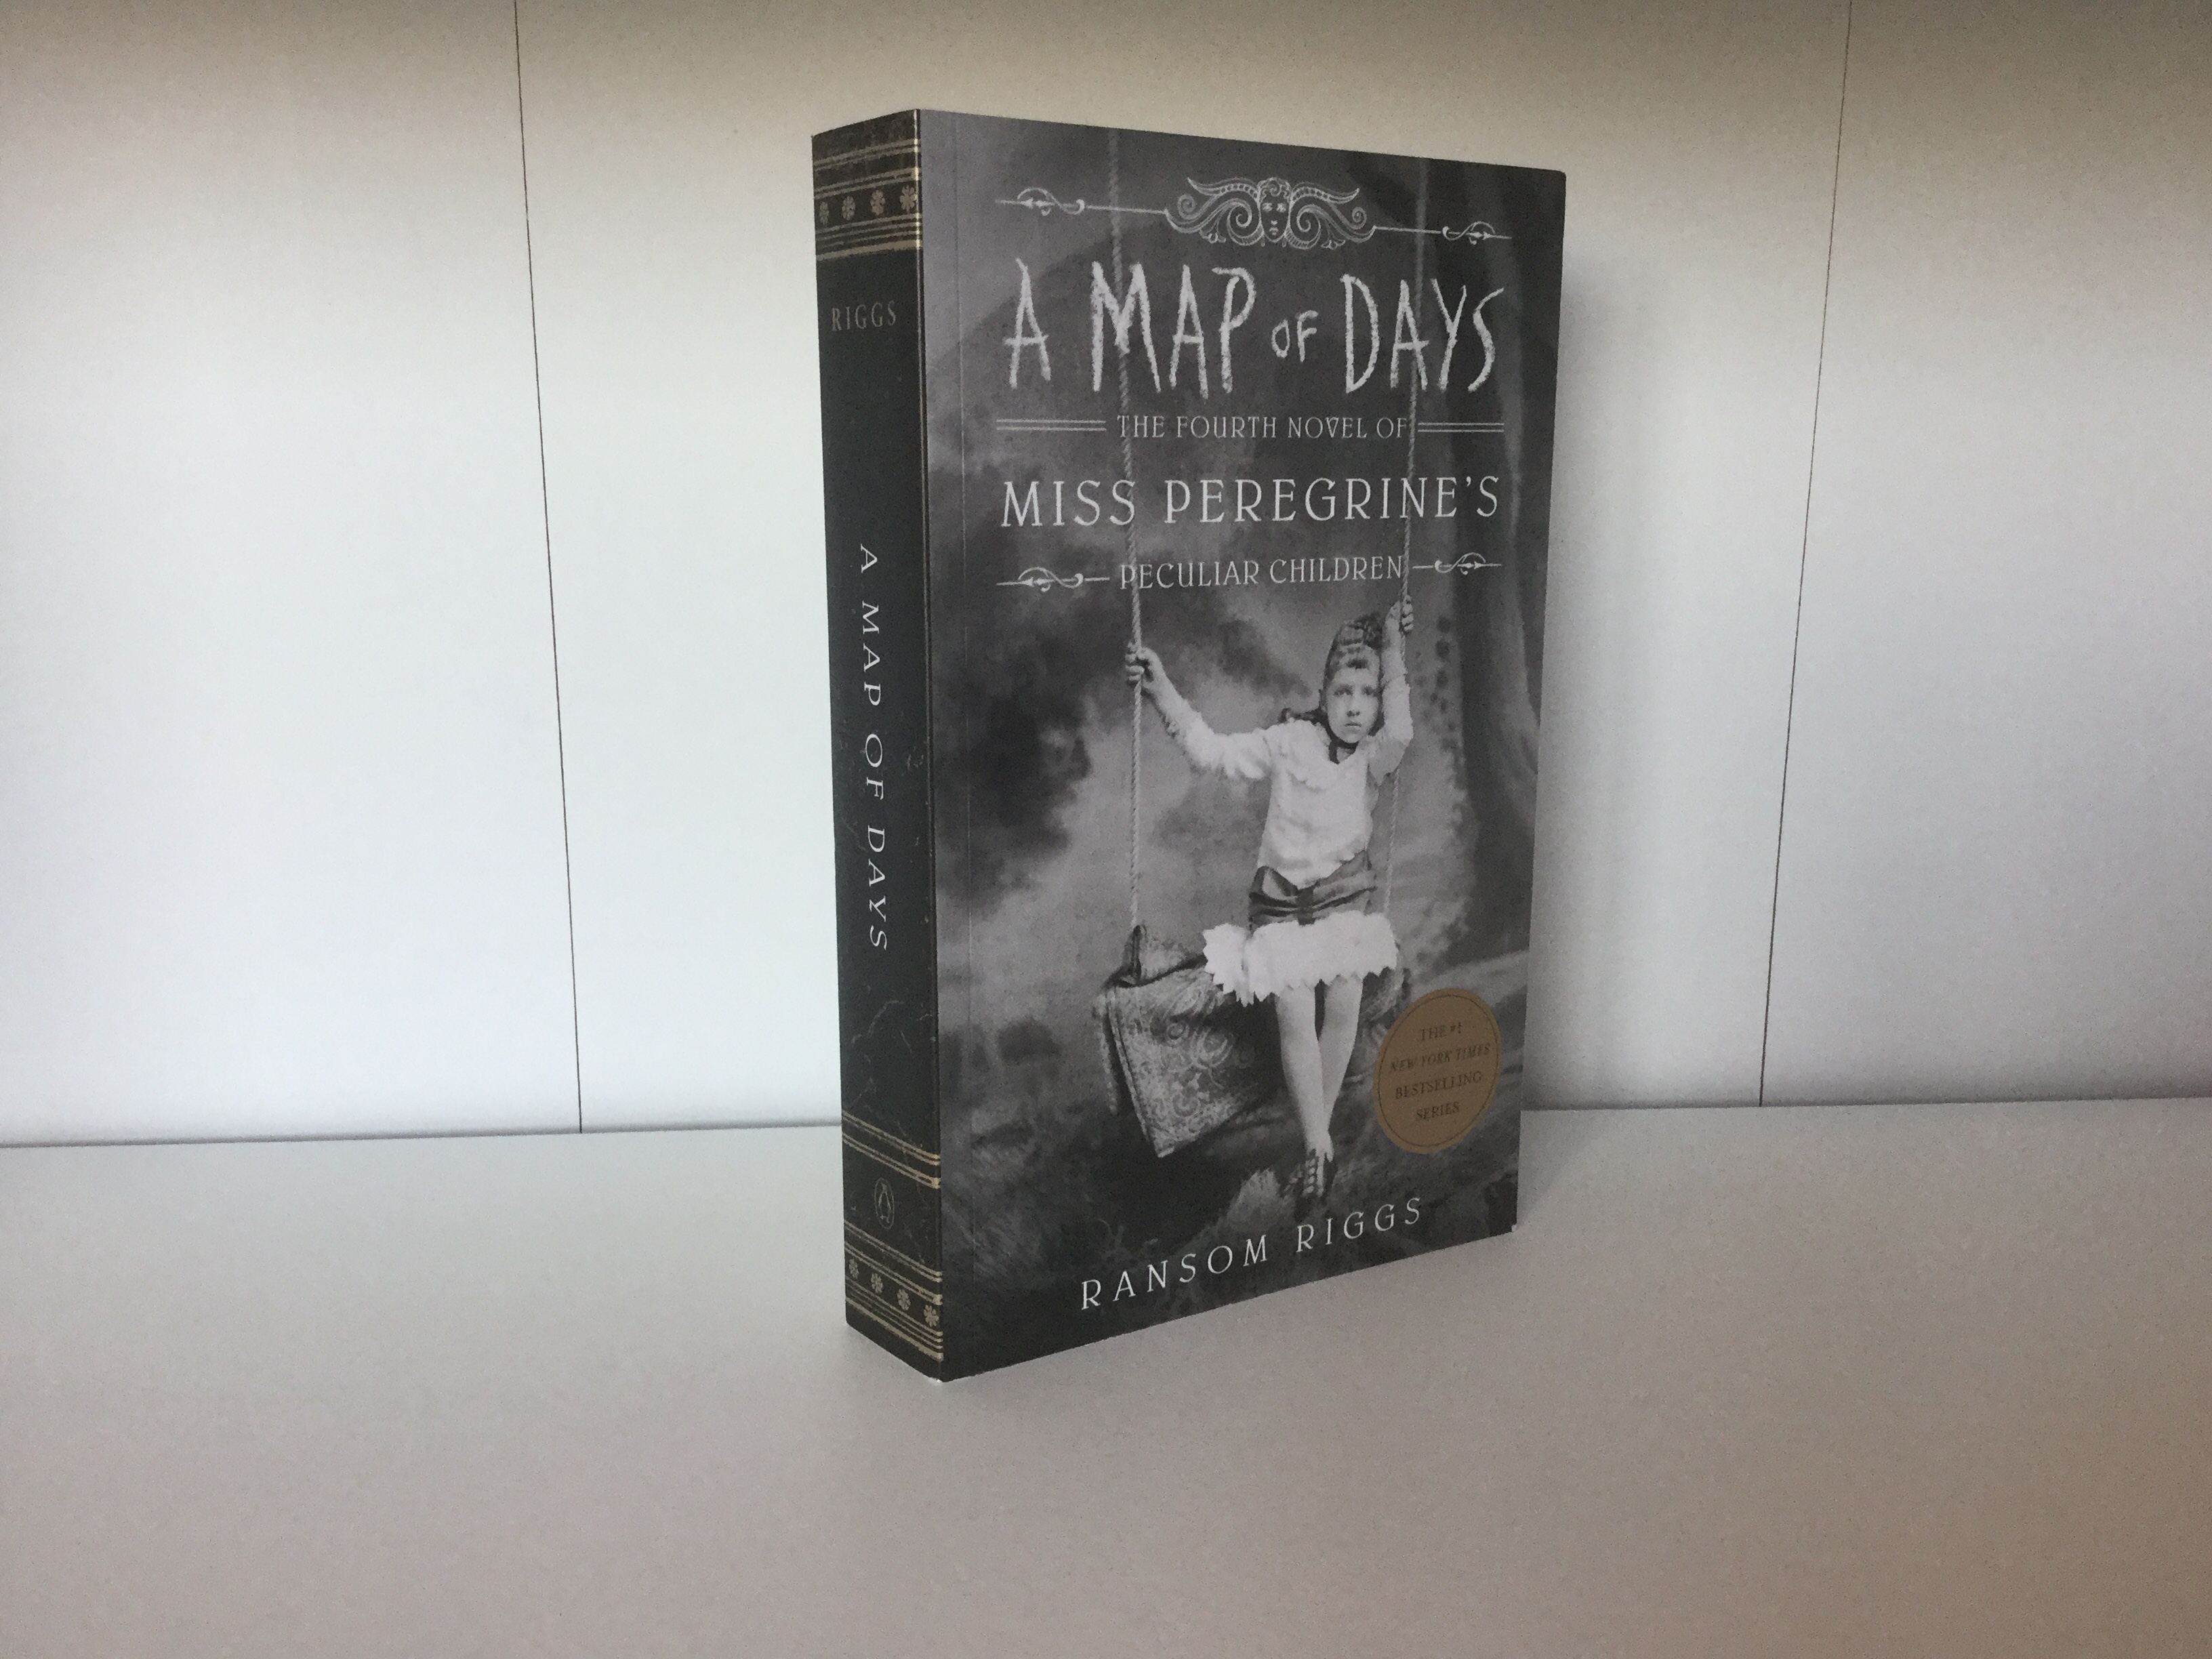 The cover of A Map of Days by Ransom Riggs